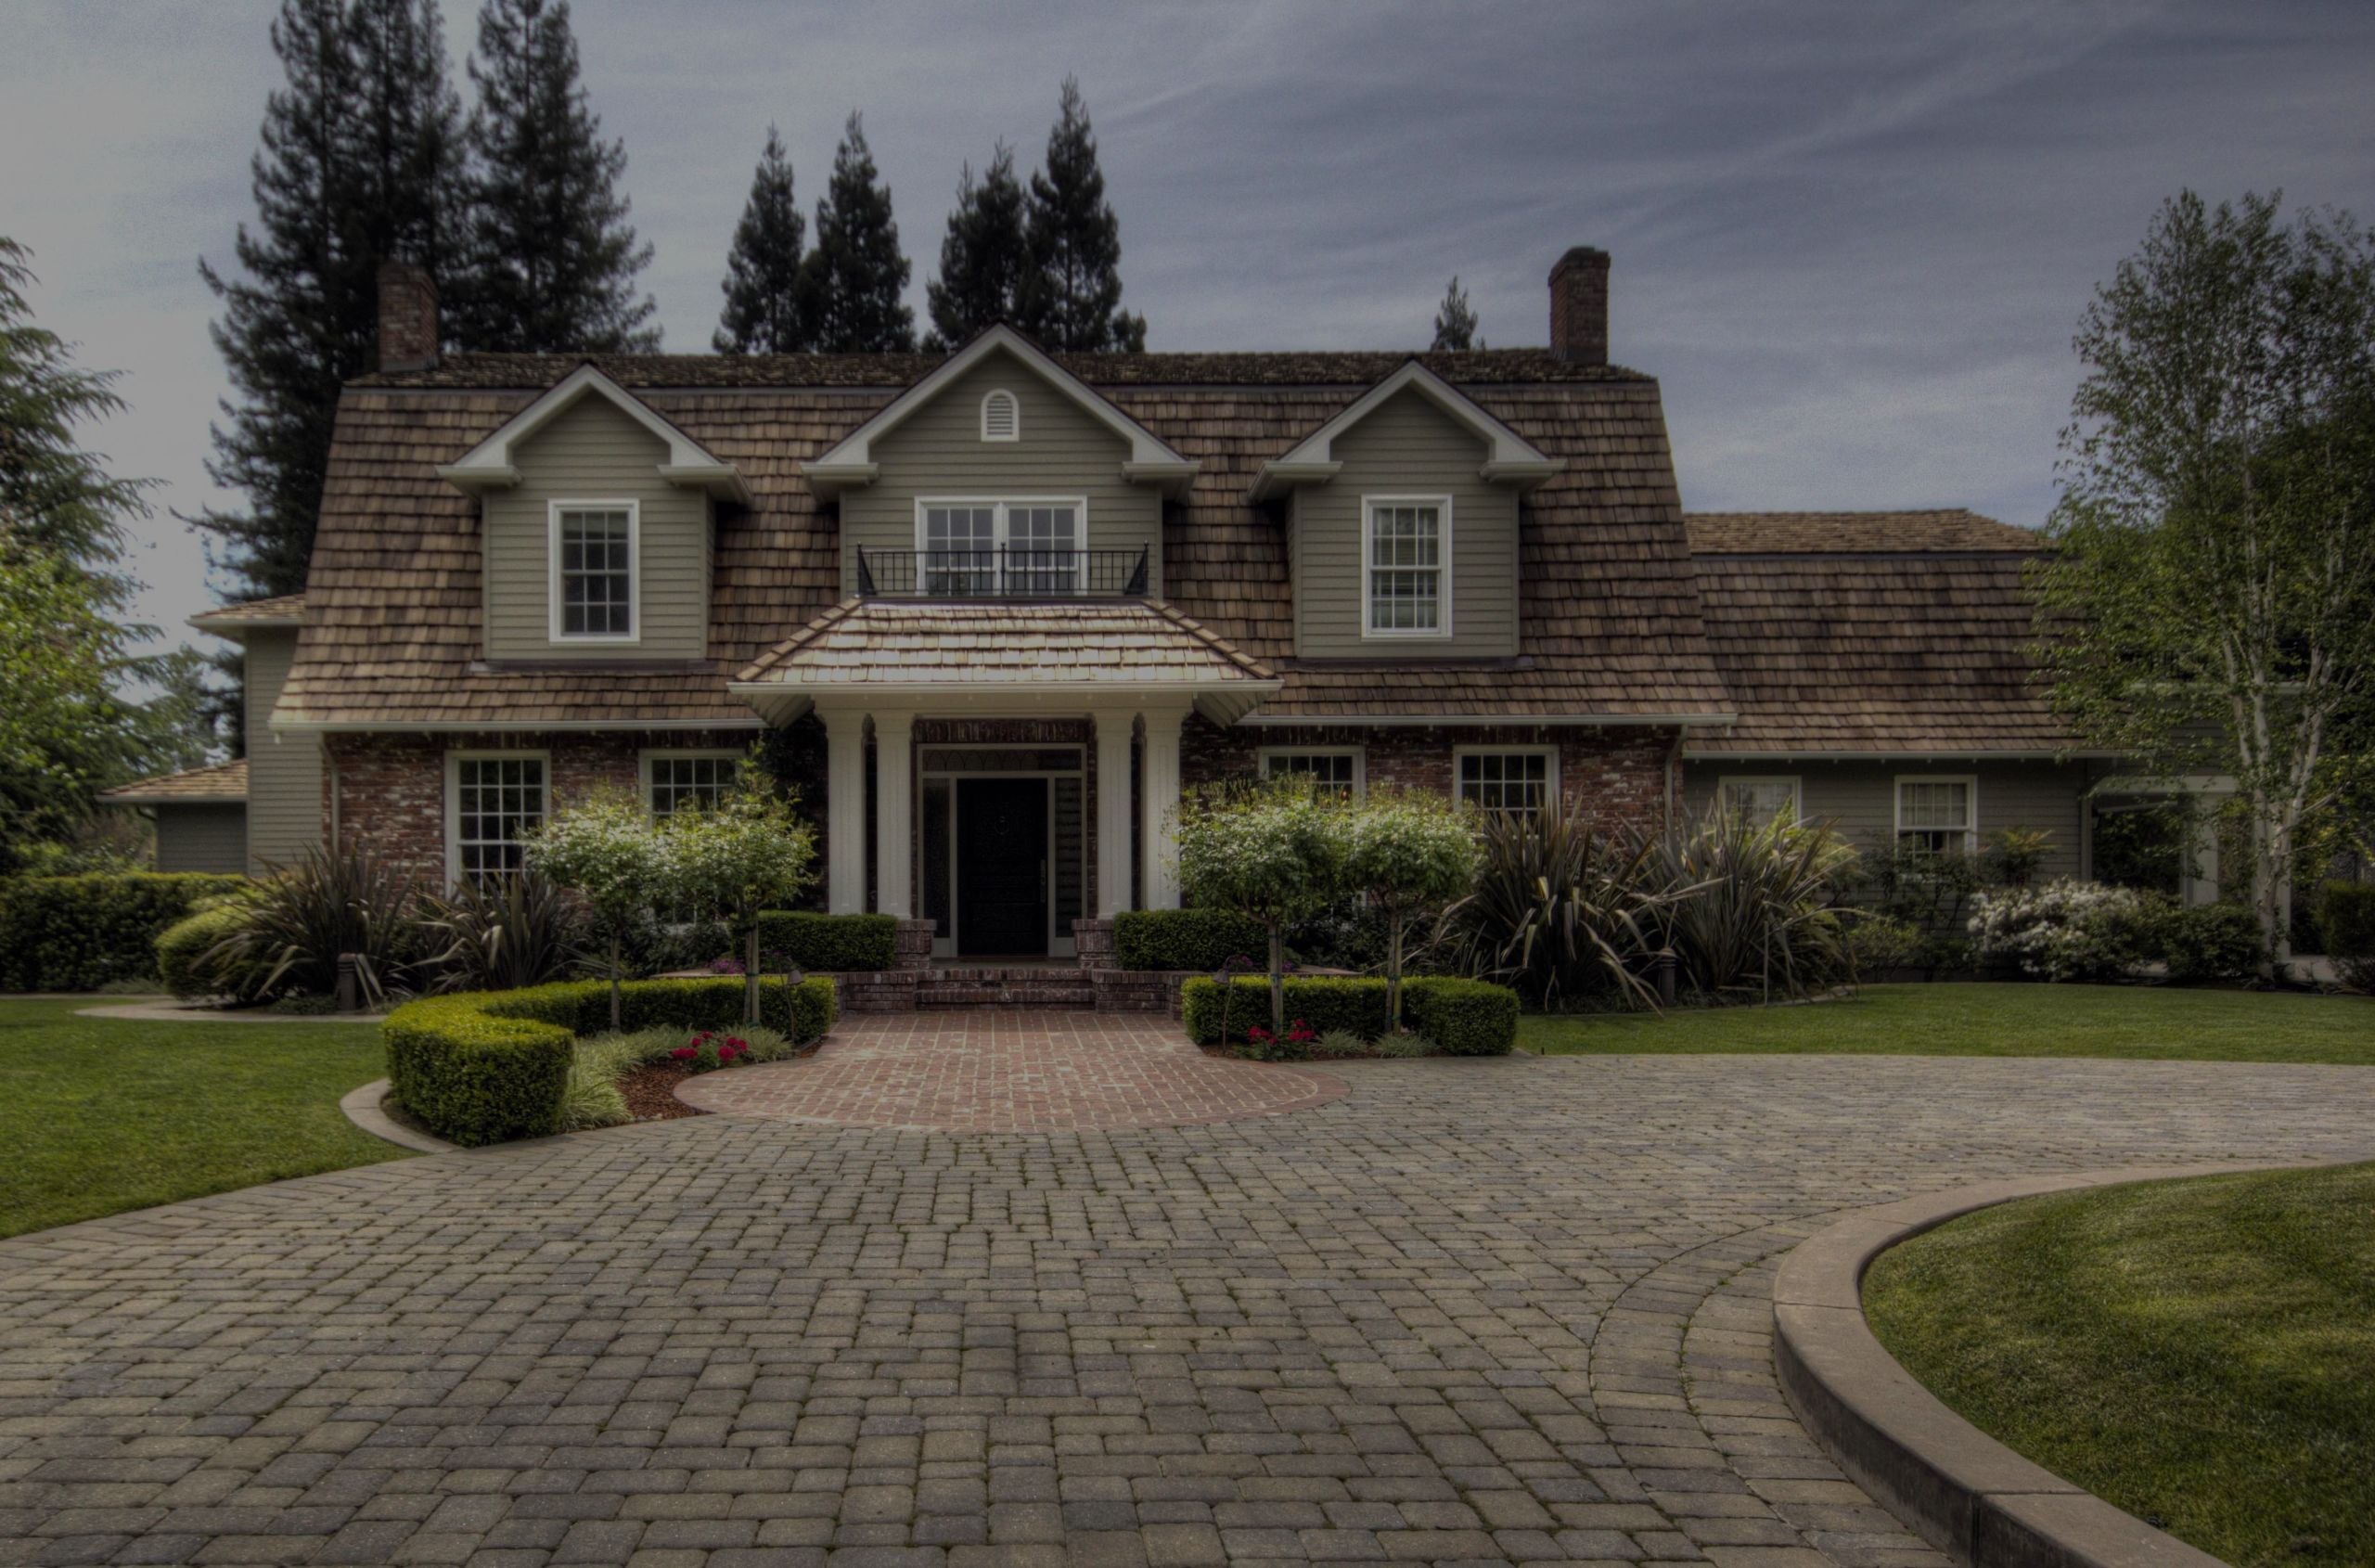 Sold for $5,425,000 | Donna Ln, Saratoga